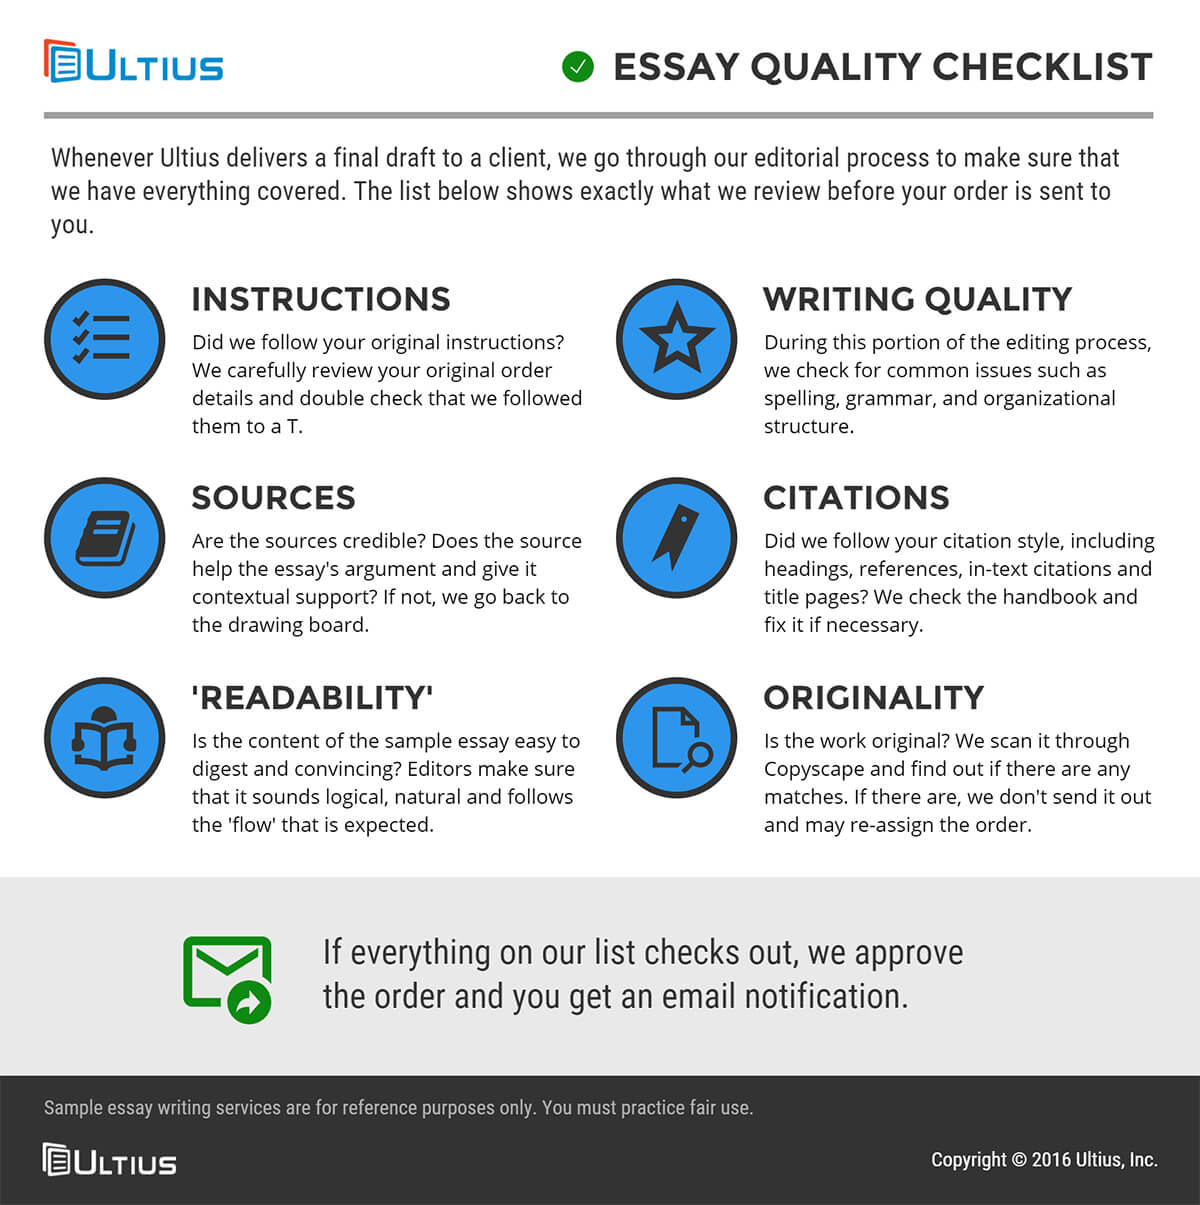 Thesis Statement For Analytical Essay Quality Checklist When You Buy An Essay From Ultius A Level English Essay Structure also English Literature Essays Buy Essay  Essay Writing Services Online  Ultius Into The Wild Essay Thesis